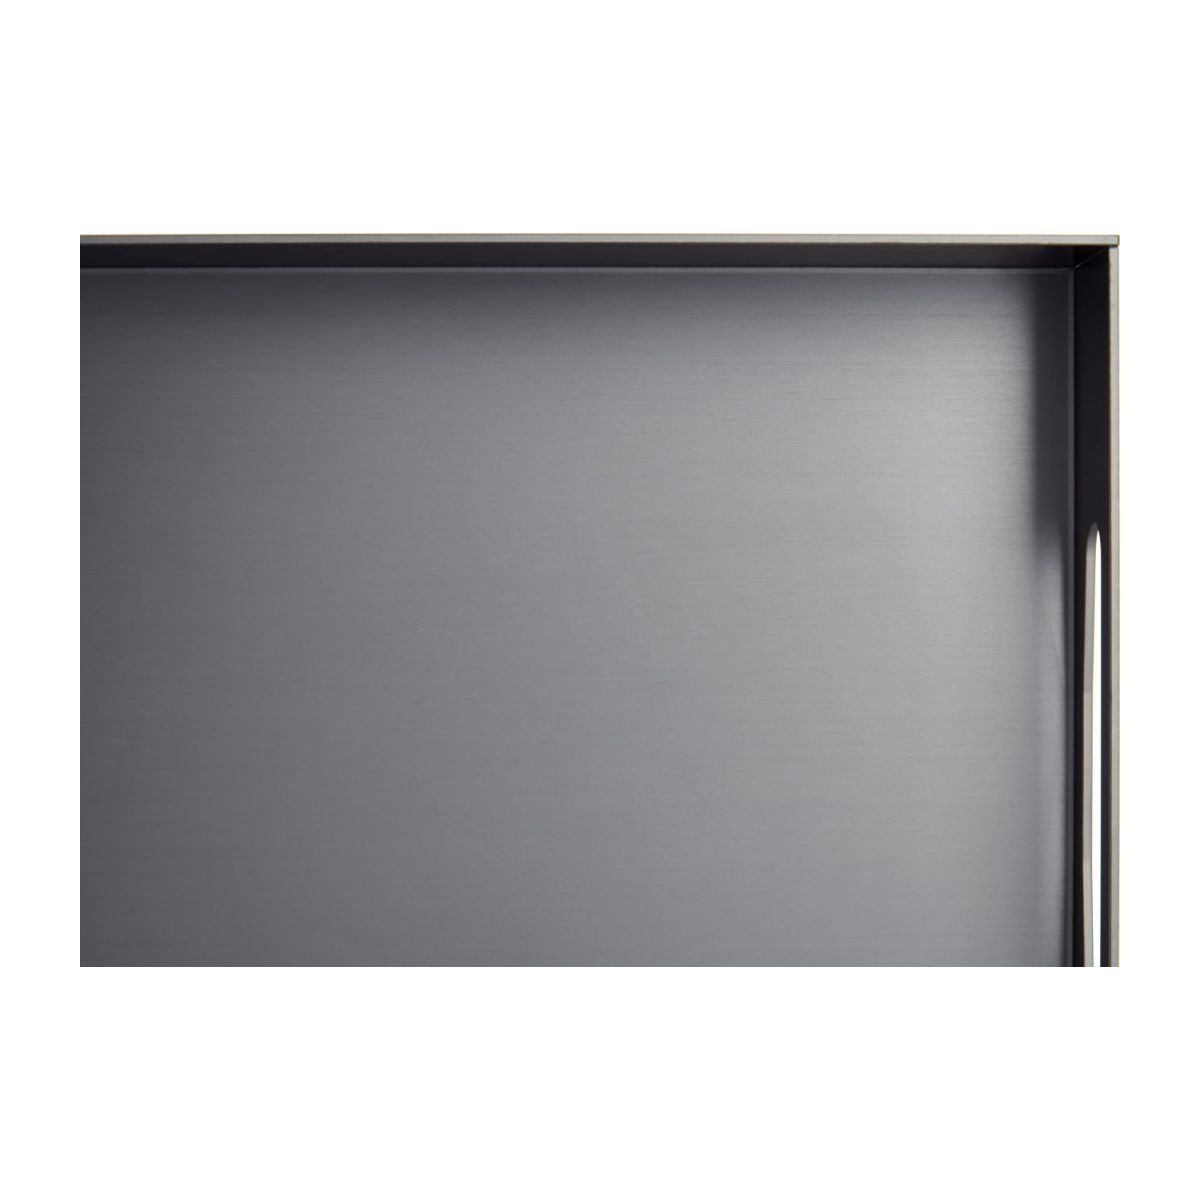 Tray in aluminium 40x25cm, black n°4